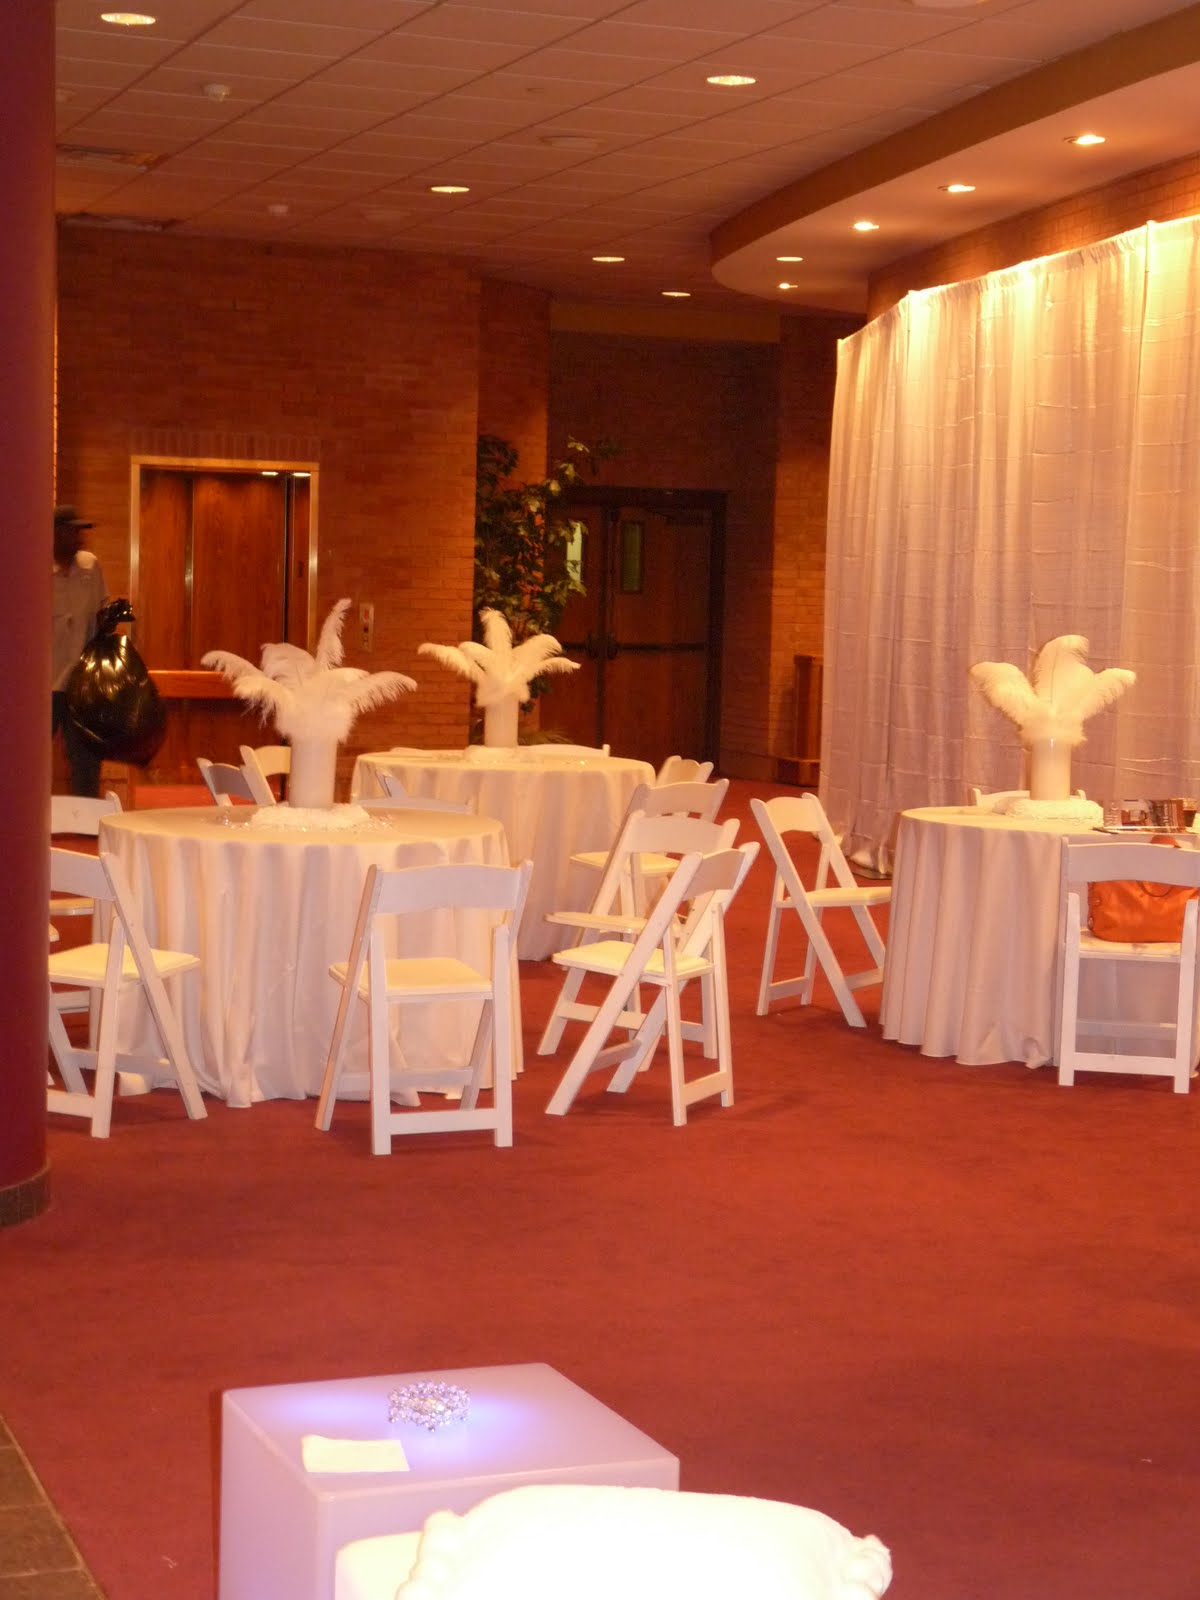 538c92b42f2 We love using feathers as centerpieces! This is just another angle of the  lobby.